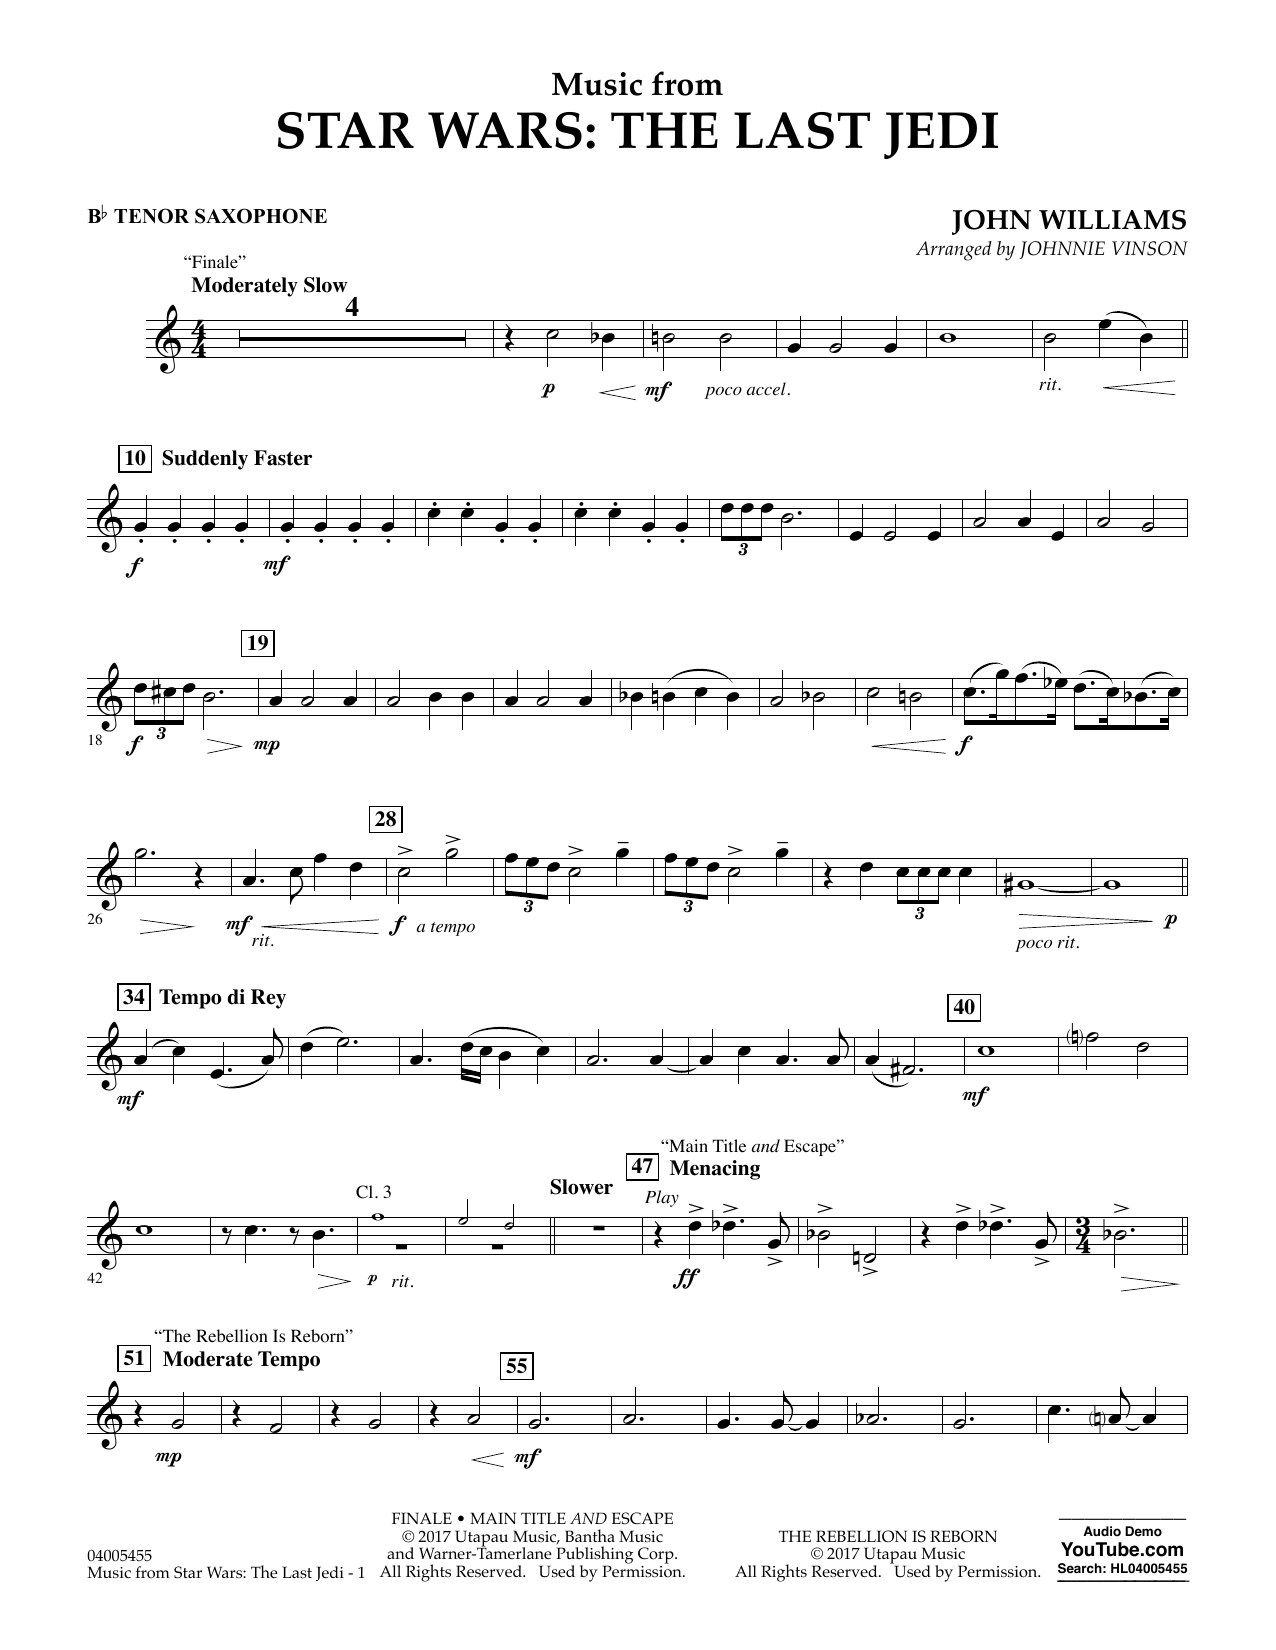 Johnnie Vinson Music from Star Wars: The Last Jedi - Bb Tenor Saxophone sheet music notes and chords. Download Printable PDF.